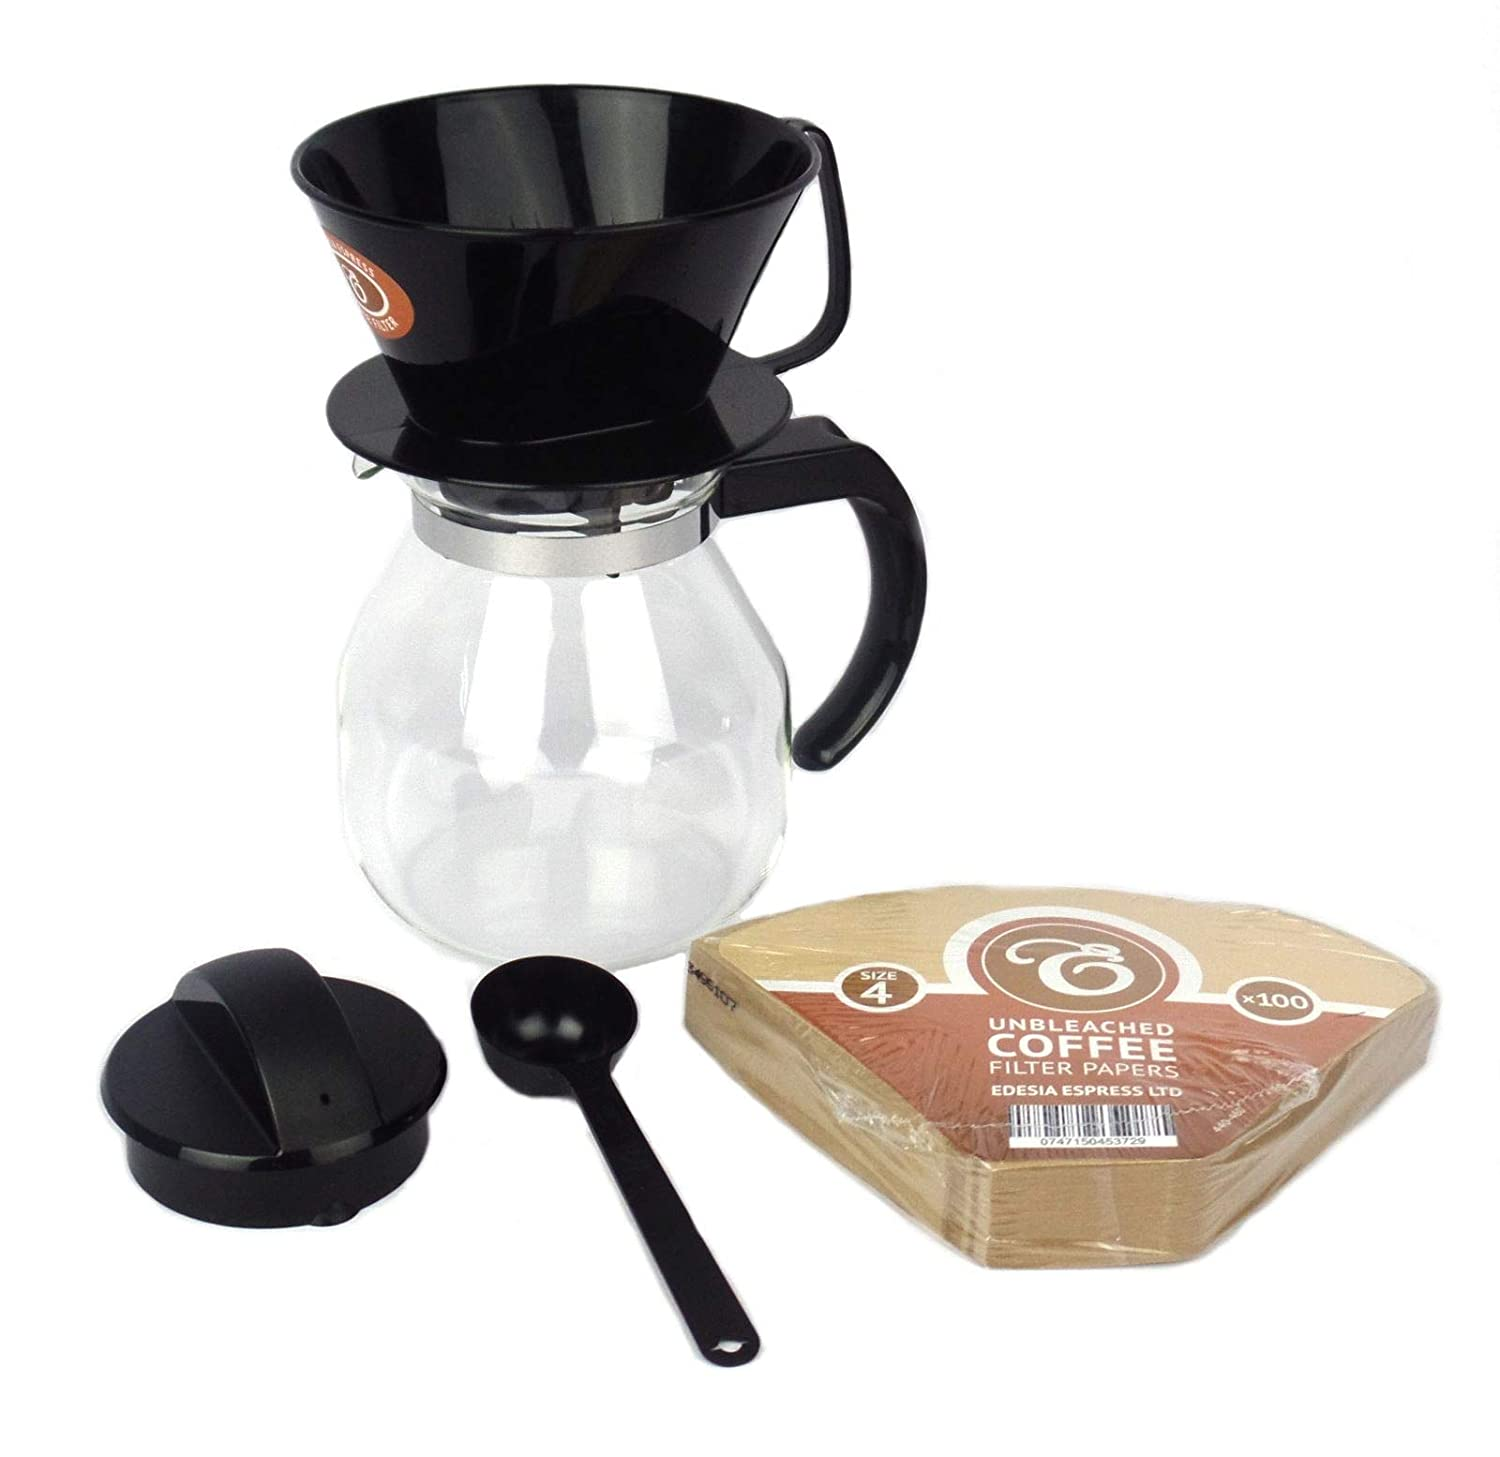 1 litre/4 Cup Filter Coffee Maker Jug Set + 100 free filter papers by EDESIA ESPRESS